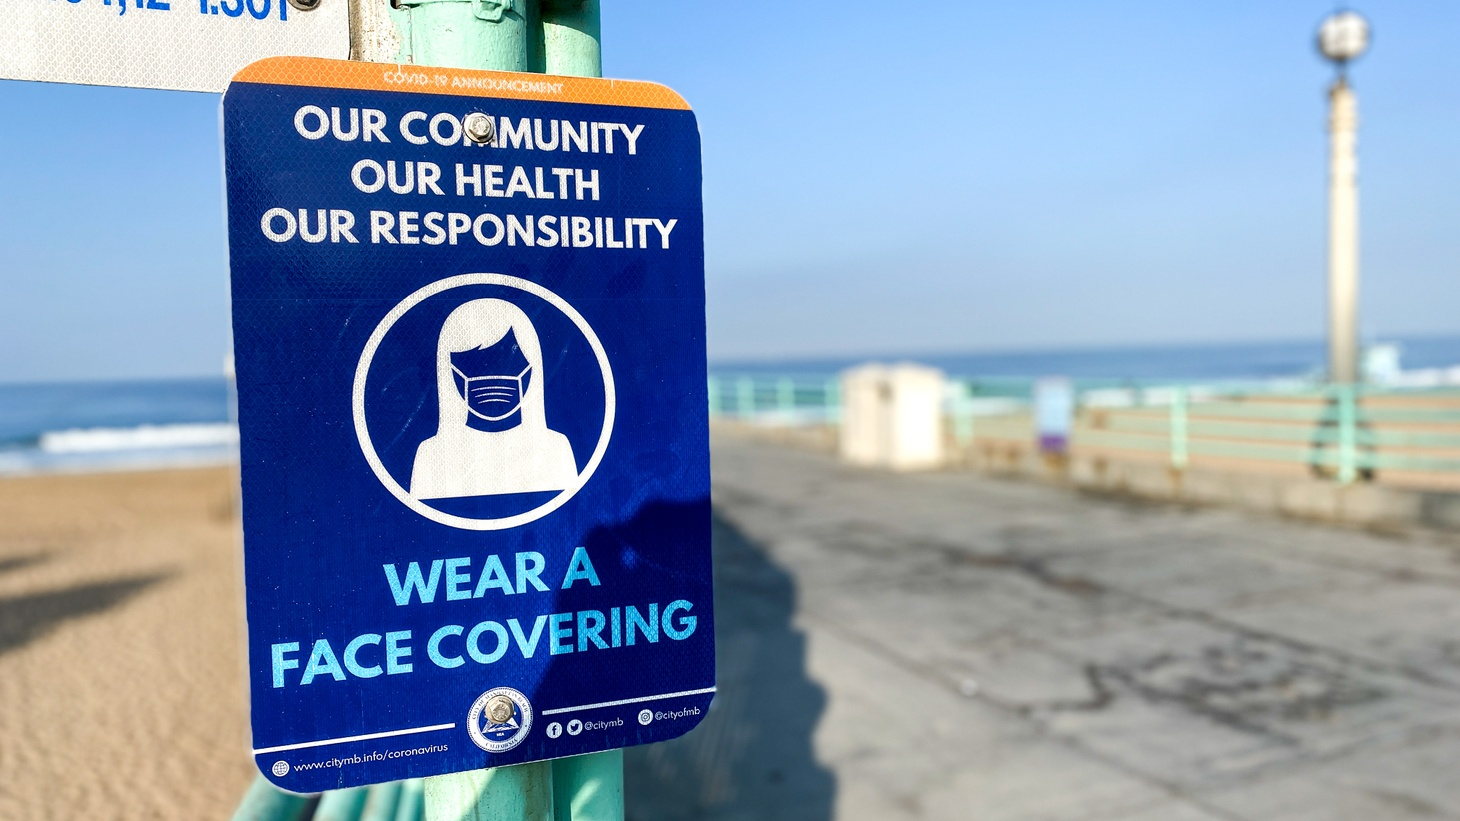 A sign at Manhattan Beach Pier advises residents to wear face coverings during the COVID-19 pandemic. September 3, 2020.